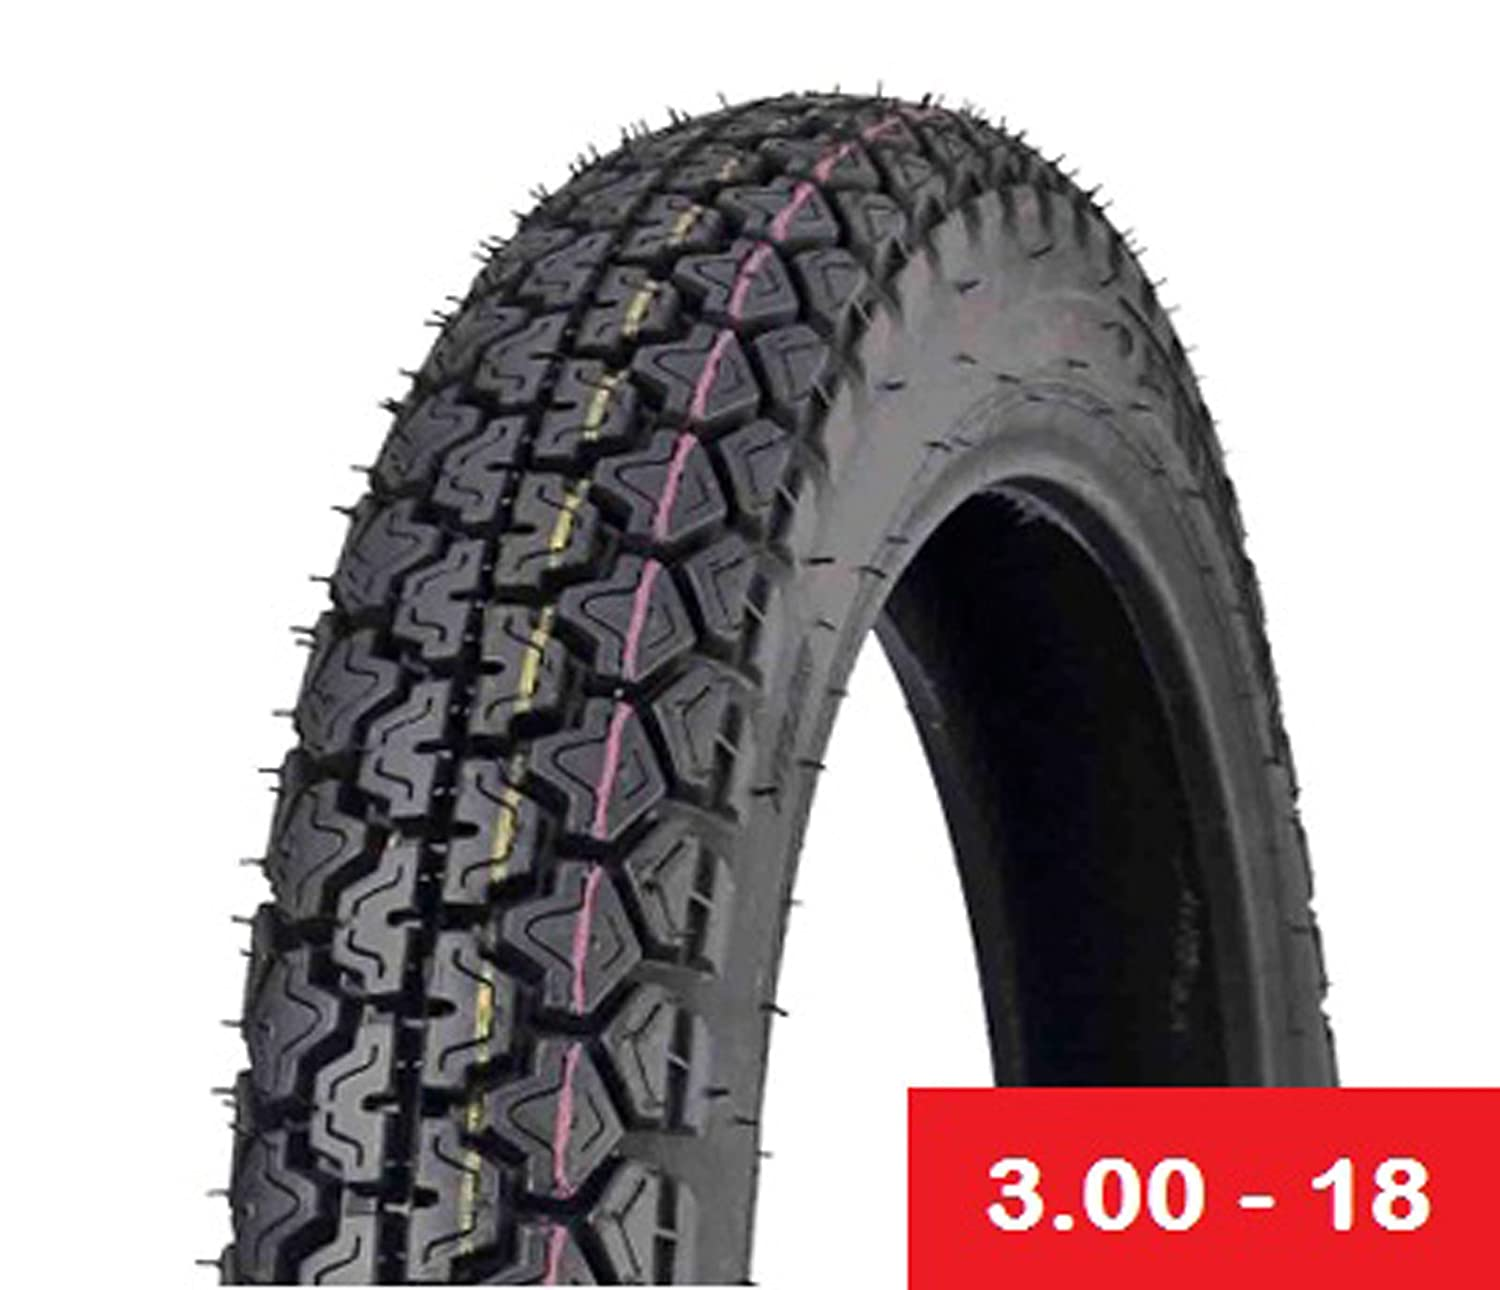 Street Cruiser MMG Tire Size 3.00-18 Front//Rear Motorcycle Tubetype